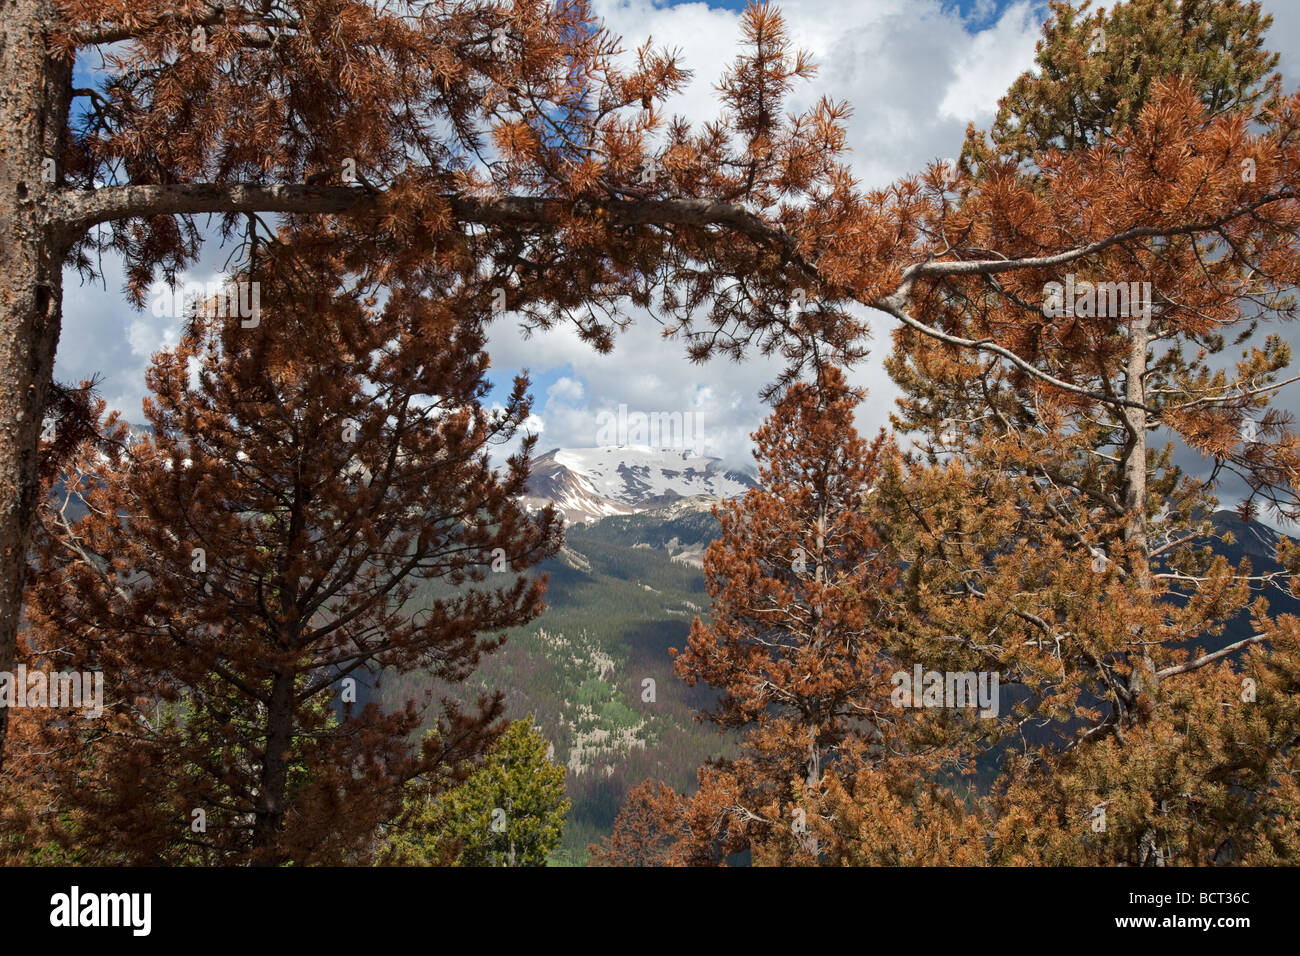 Trees killed by pine beetles in Rocky Mountain National Park - Stock Image